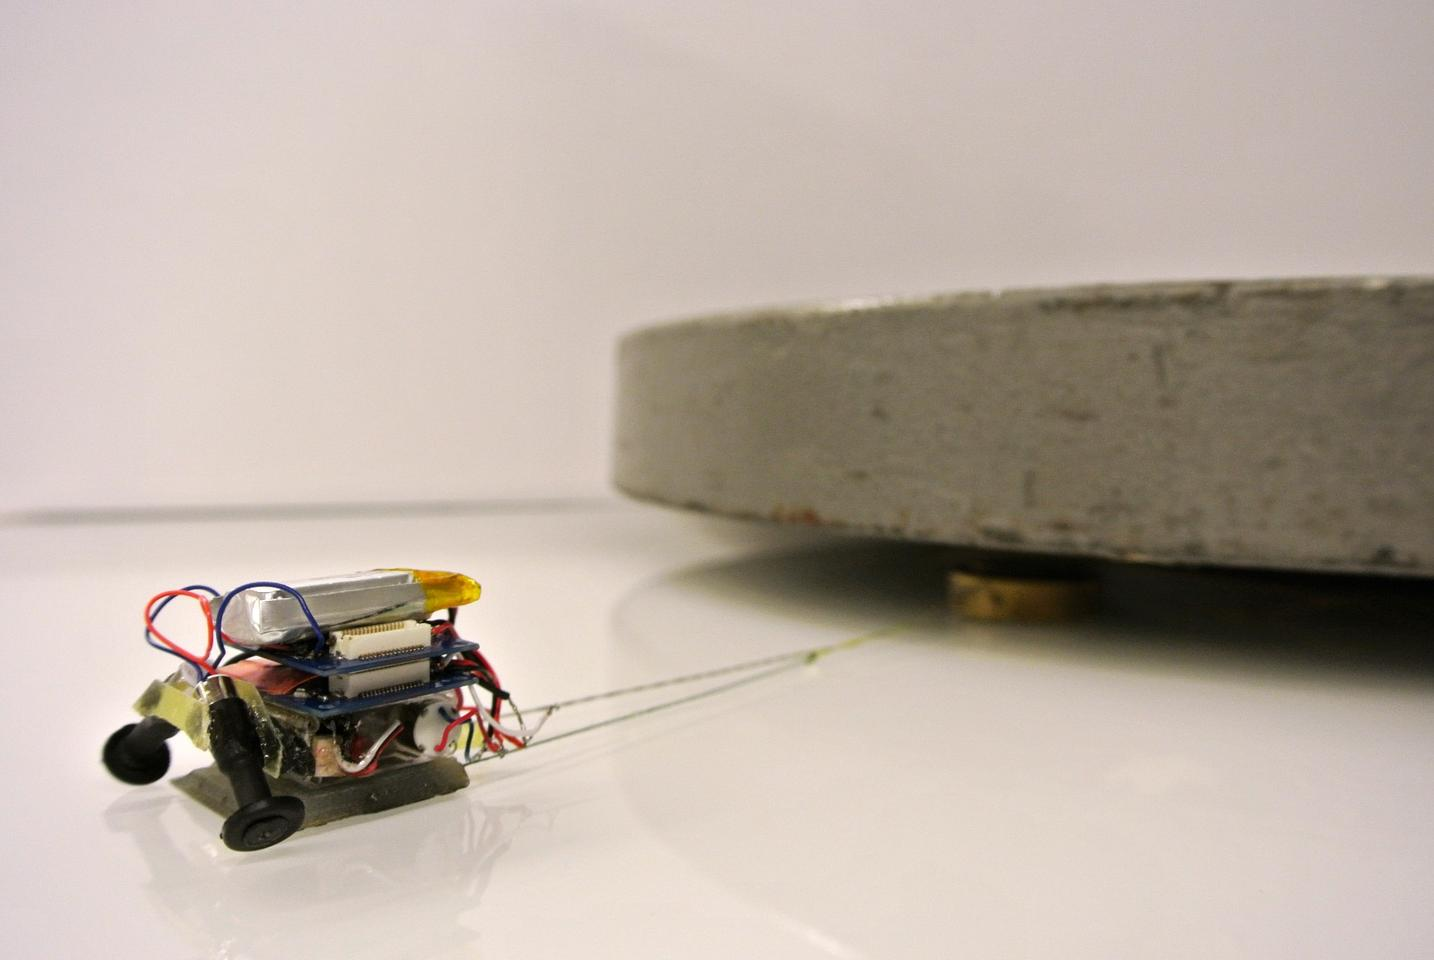 The robots use a smart adhesive surface to carry many times their own weight